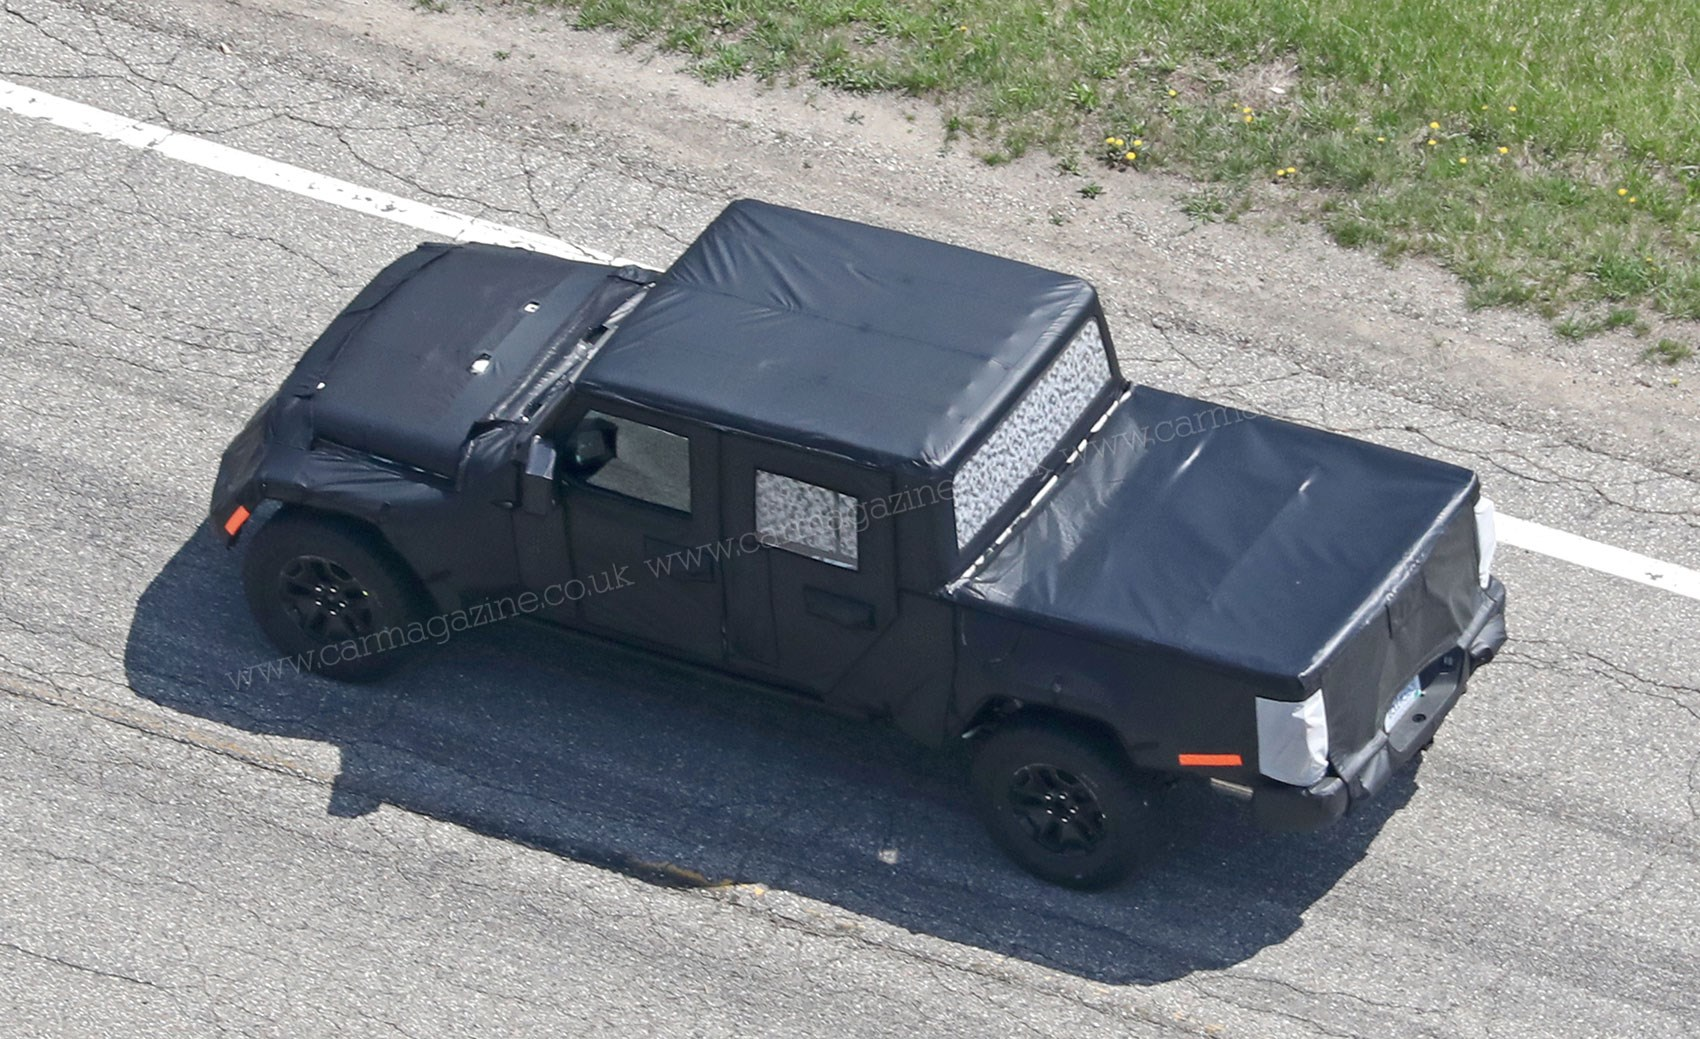 New 2019 Jeep Wrangler \'JT\' pick-up truck spotted by CAR Magazine